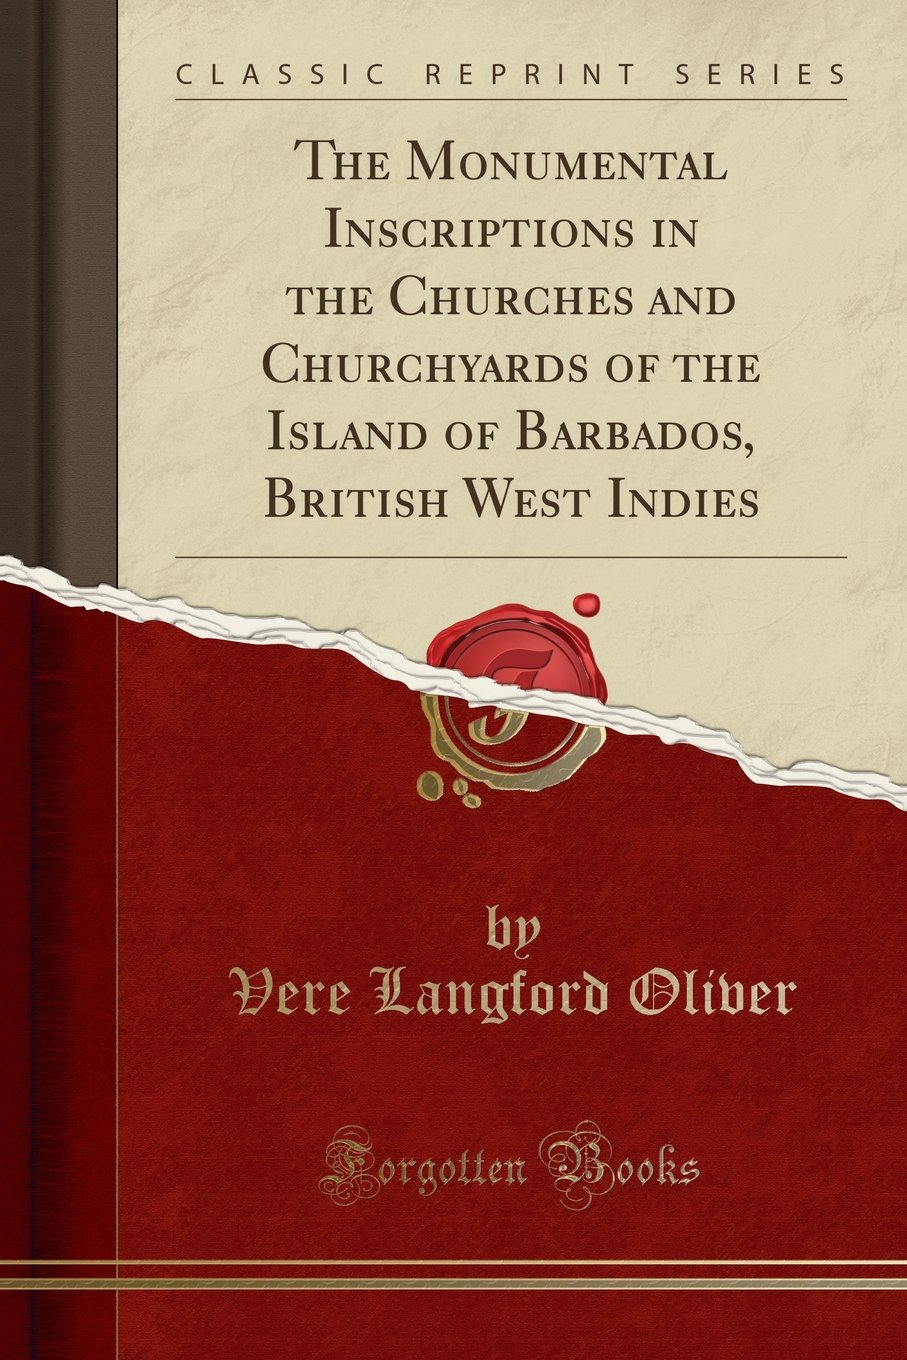 The Monumental Inscriptions in the Churches and Churchyards of the Island of Barbados, British West Indies (Classic Reprint)